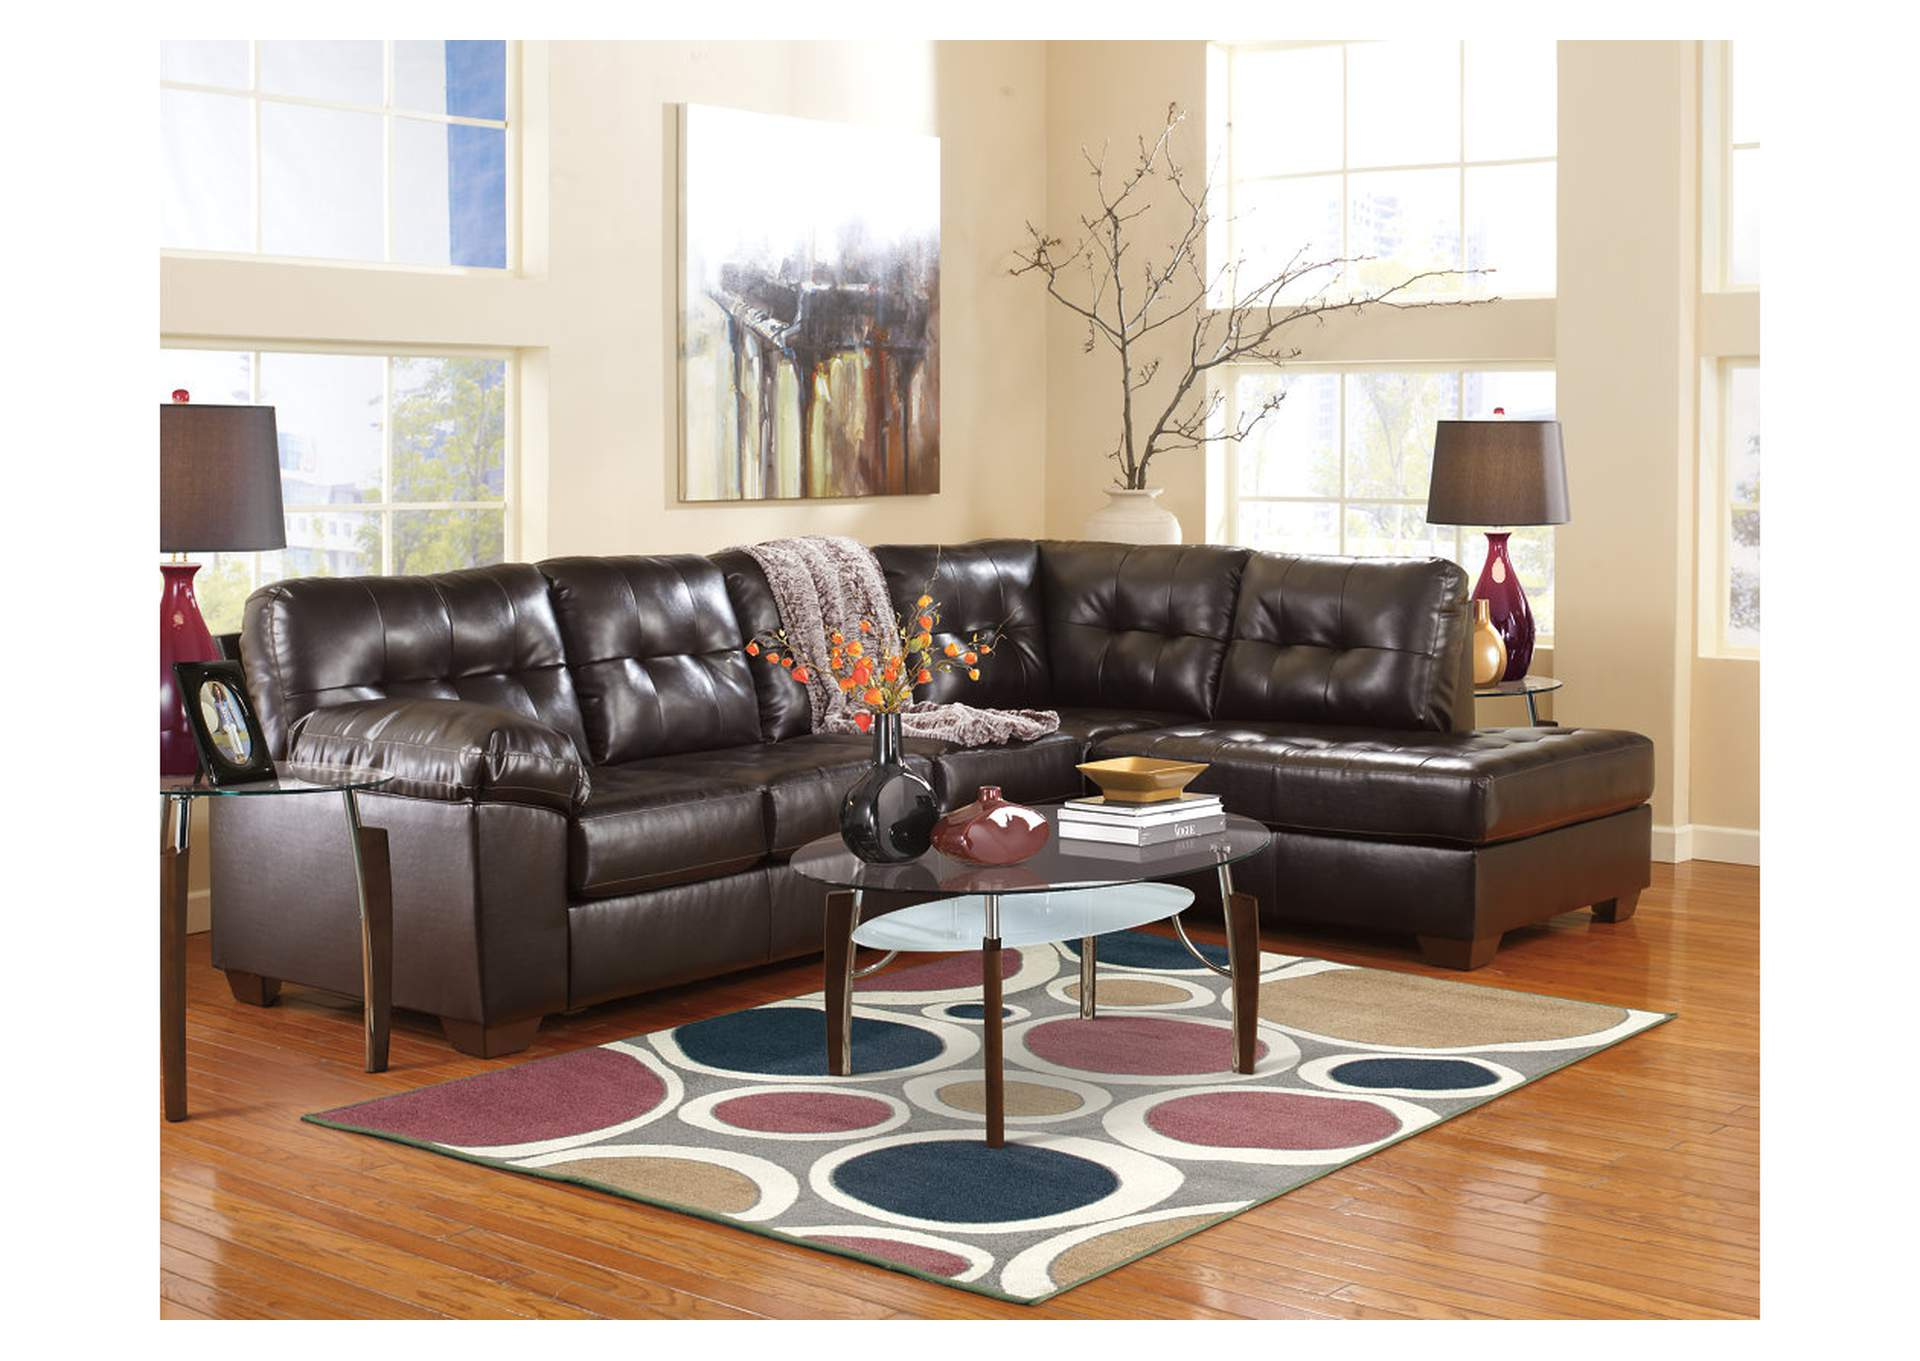 Alliston DuraBlend Chocolate RAF Chaise Sectional,Signature Design By Ashley